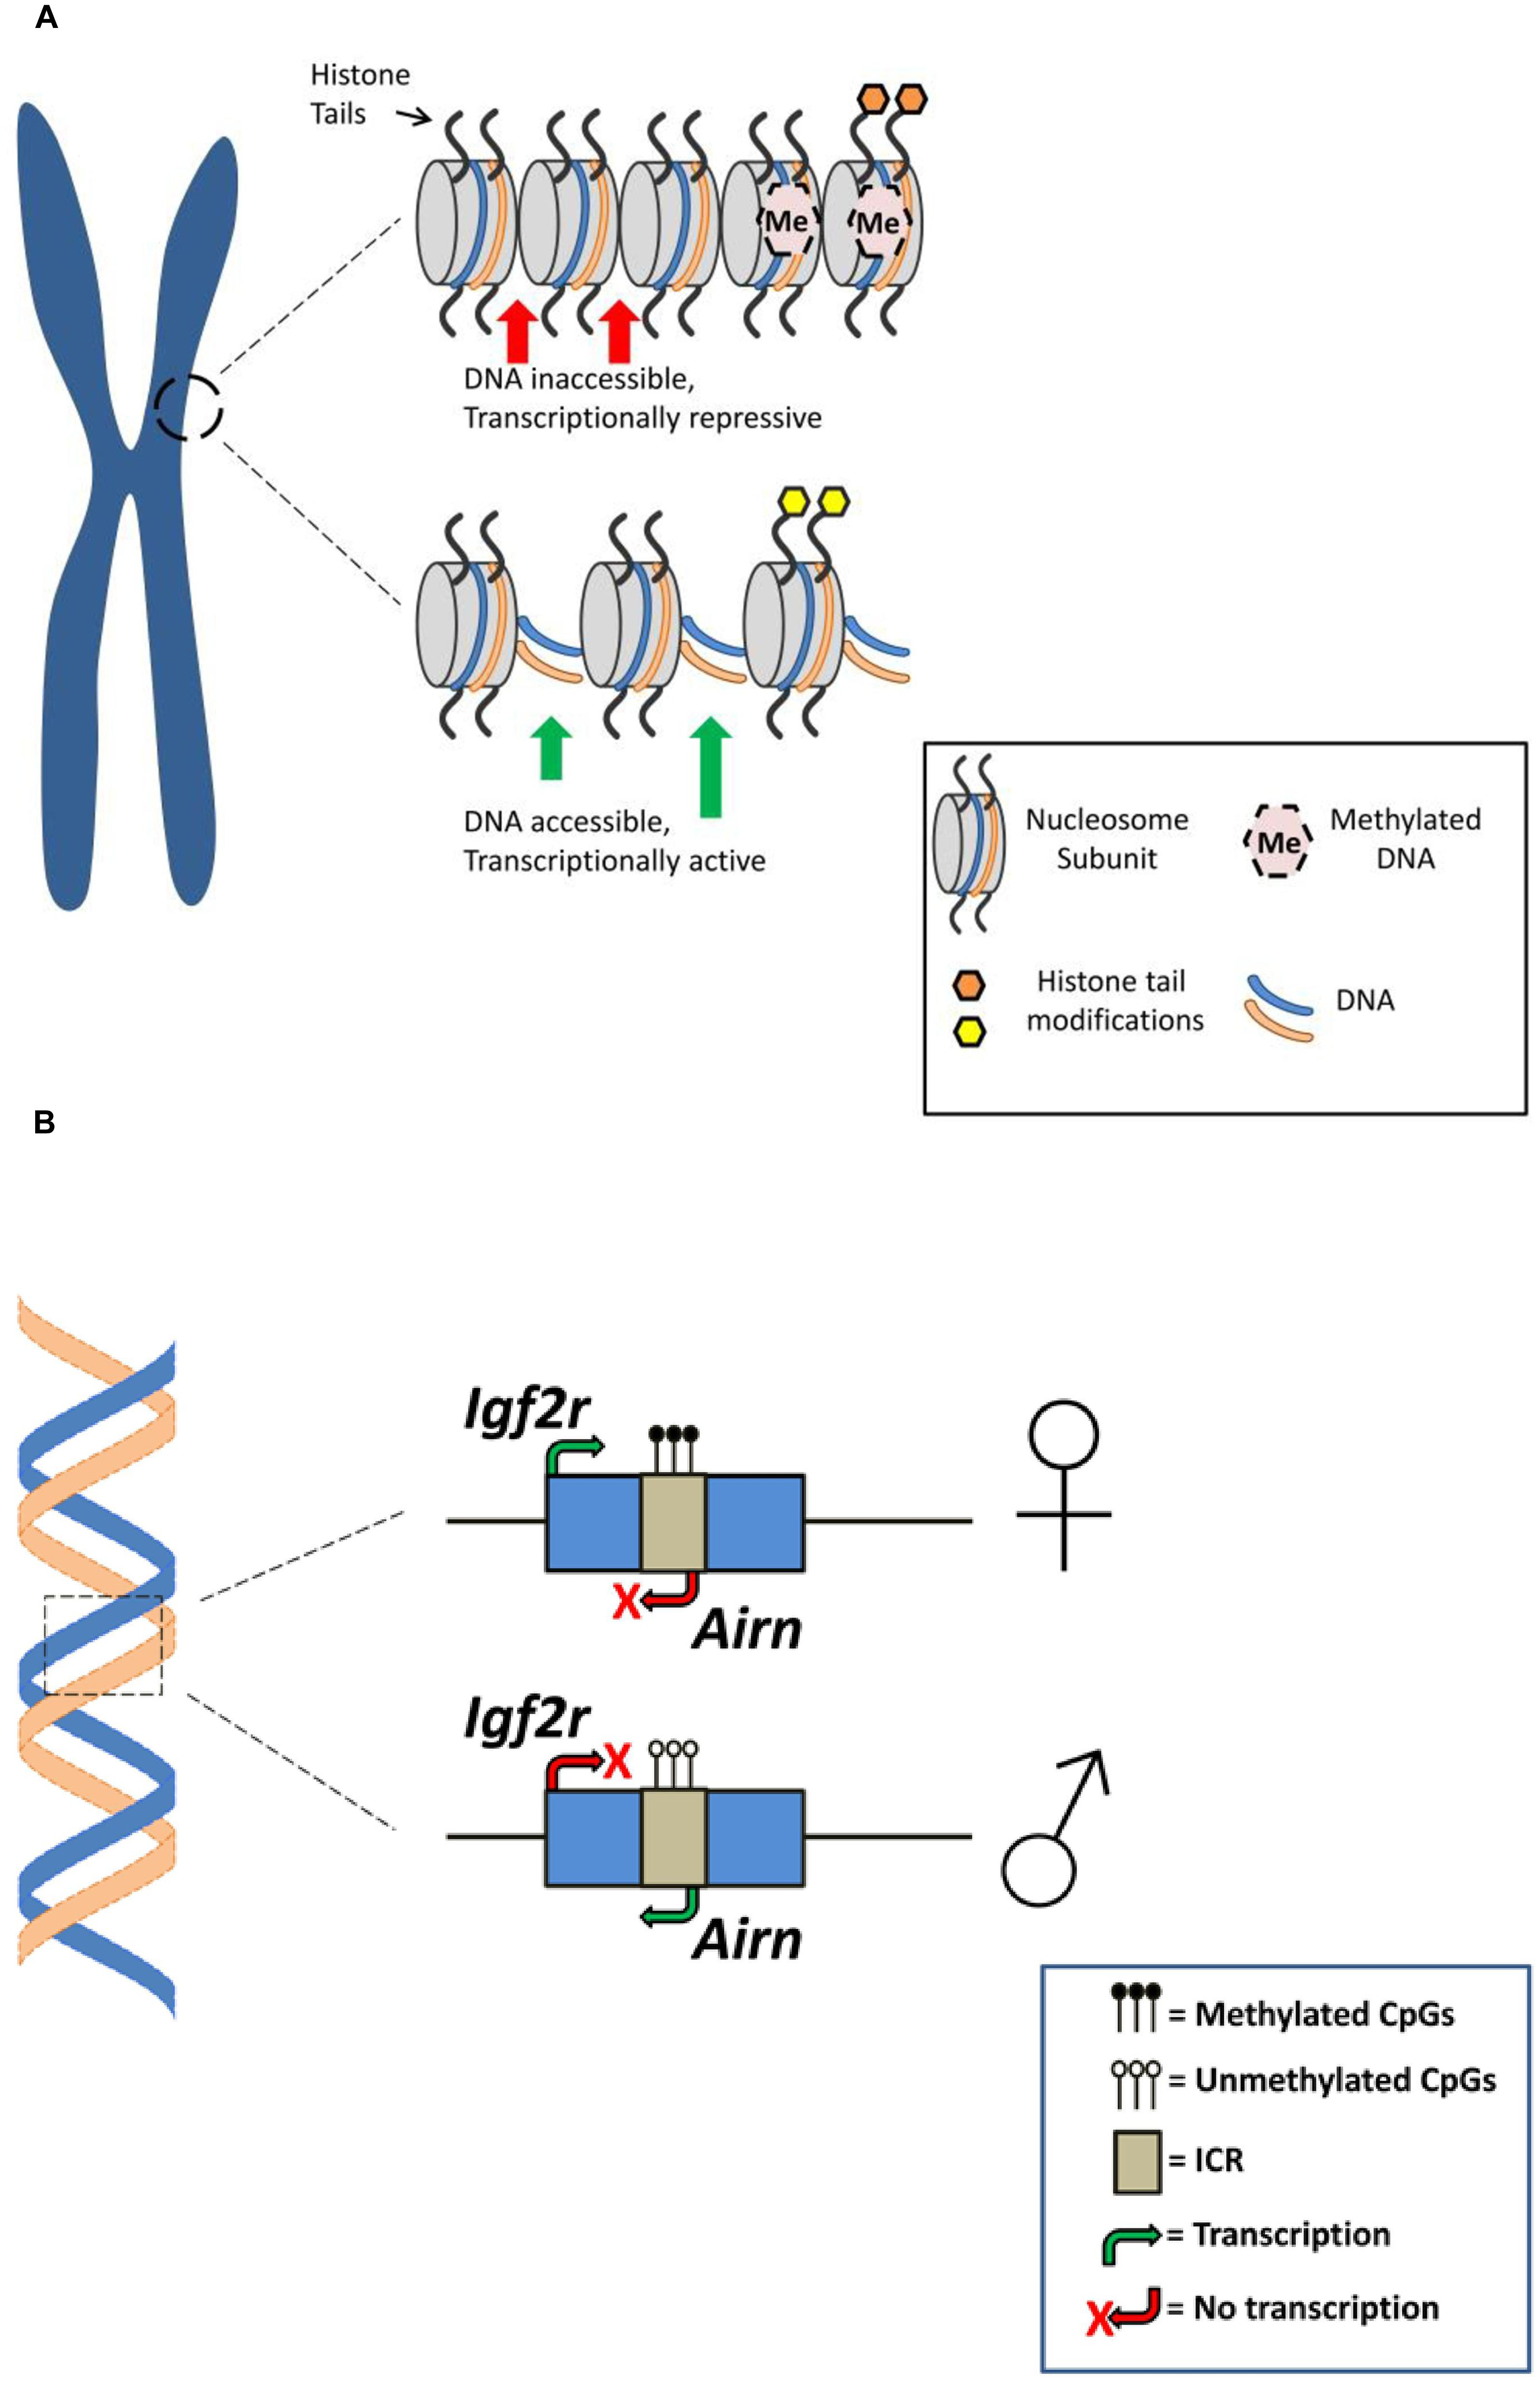 an analysis of the genetic traits of imprinting Pursuing for human genetic traits lab answers full online do you really need this ebook of human genetic traits lab answers full online it takes me 80 hours just to obtain the right download link, and.